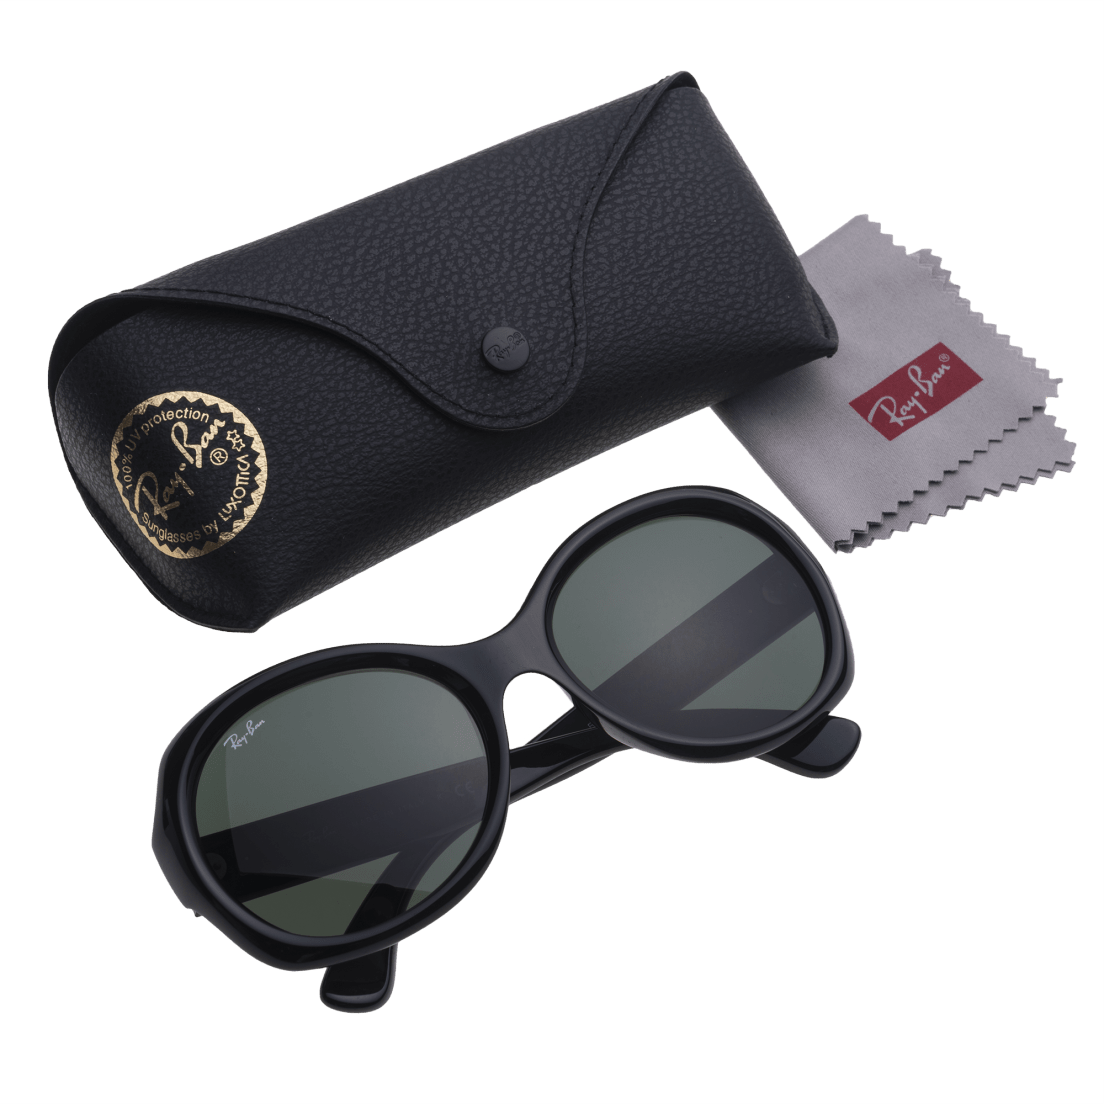 c8f9b2aae6432 Ray-Ban RB4191 Sunglasses with Black Frame   Green Classic Lenses